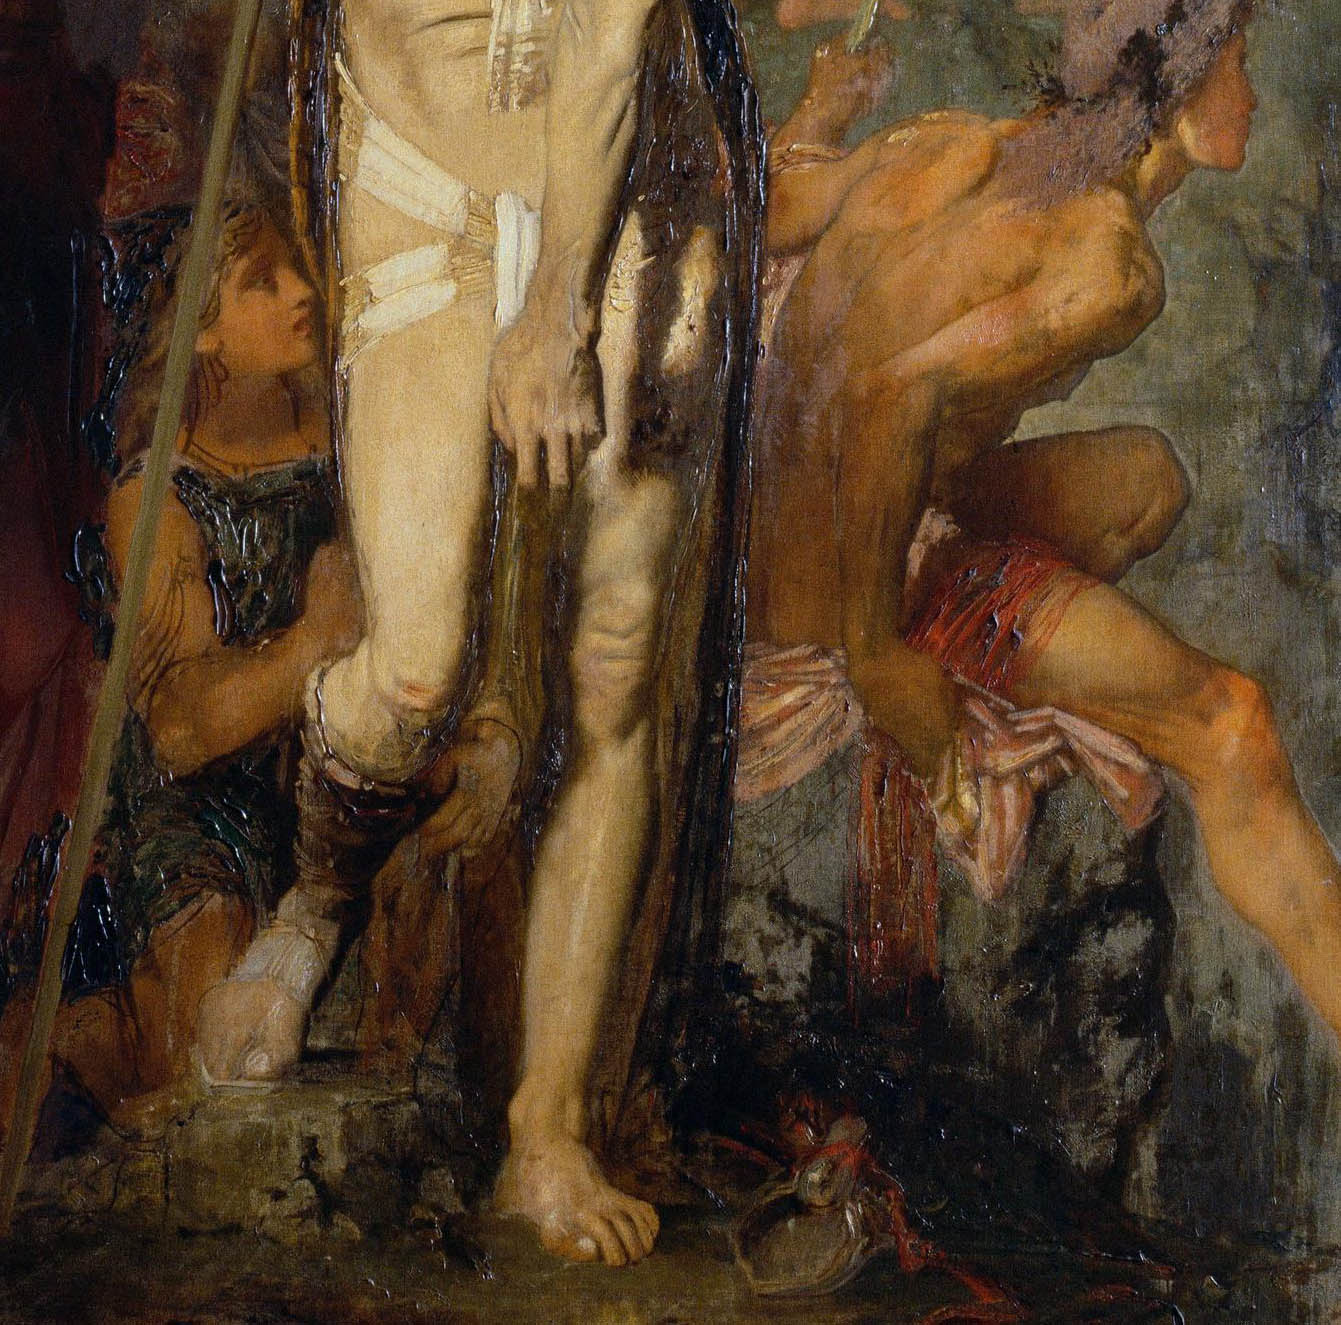 huile-gelifiee-atelier-fontaines-peinture-gustave-moreau-1.jpg